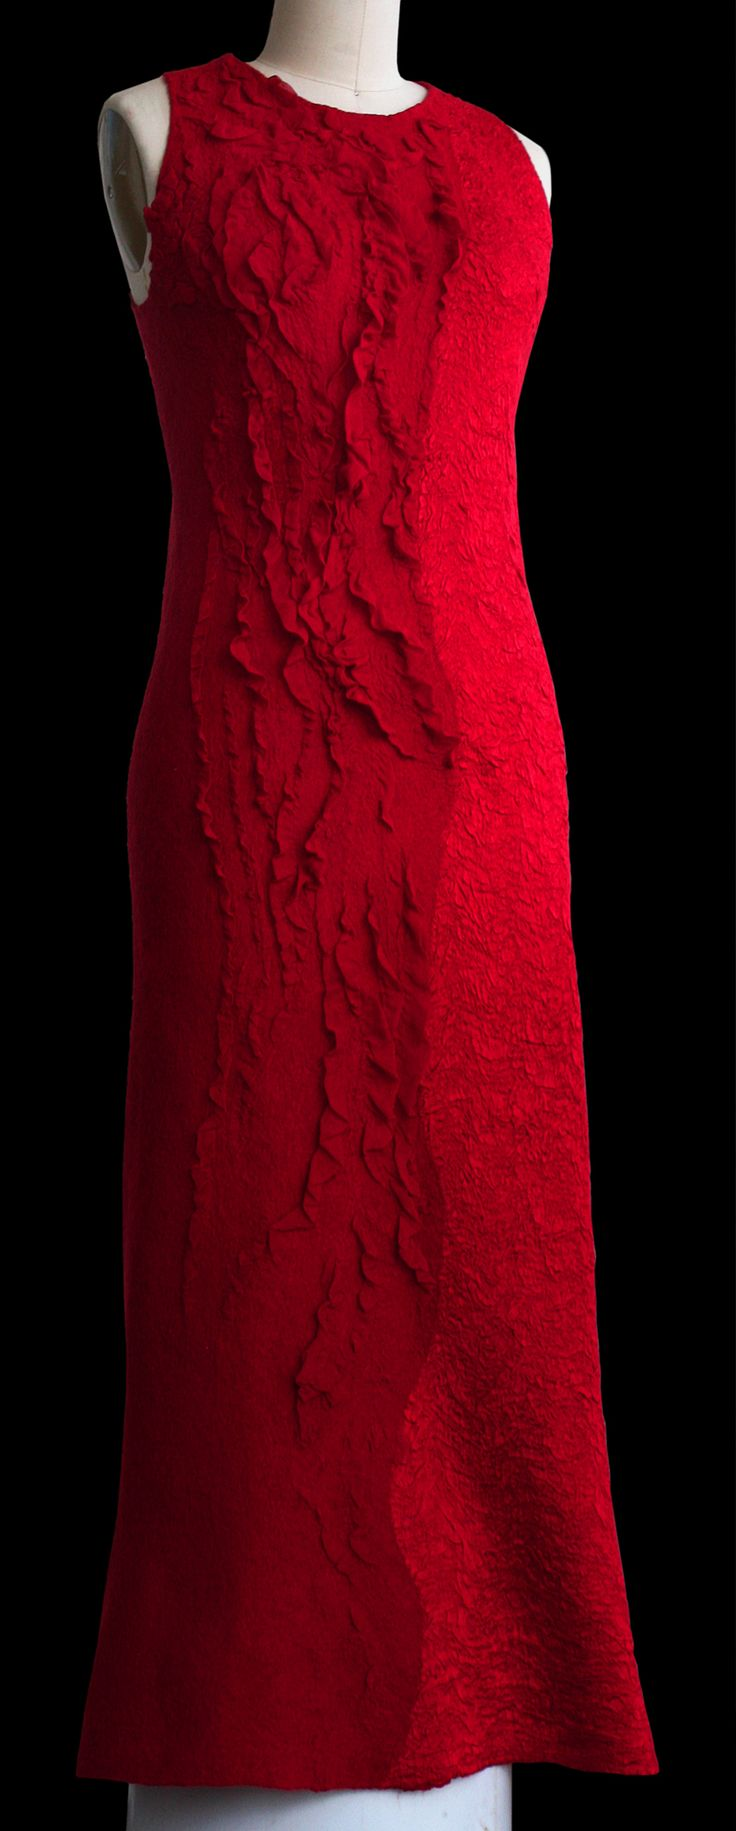 Felted red silk woman dress OOAK seamless long dress evening gown